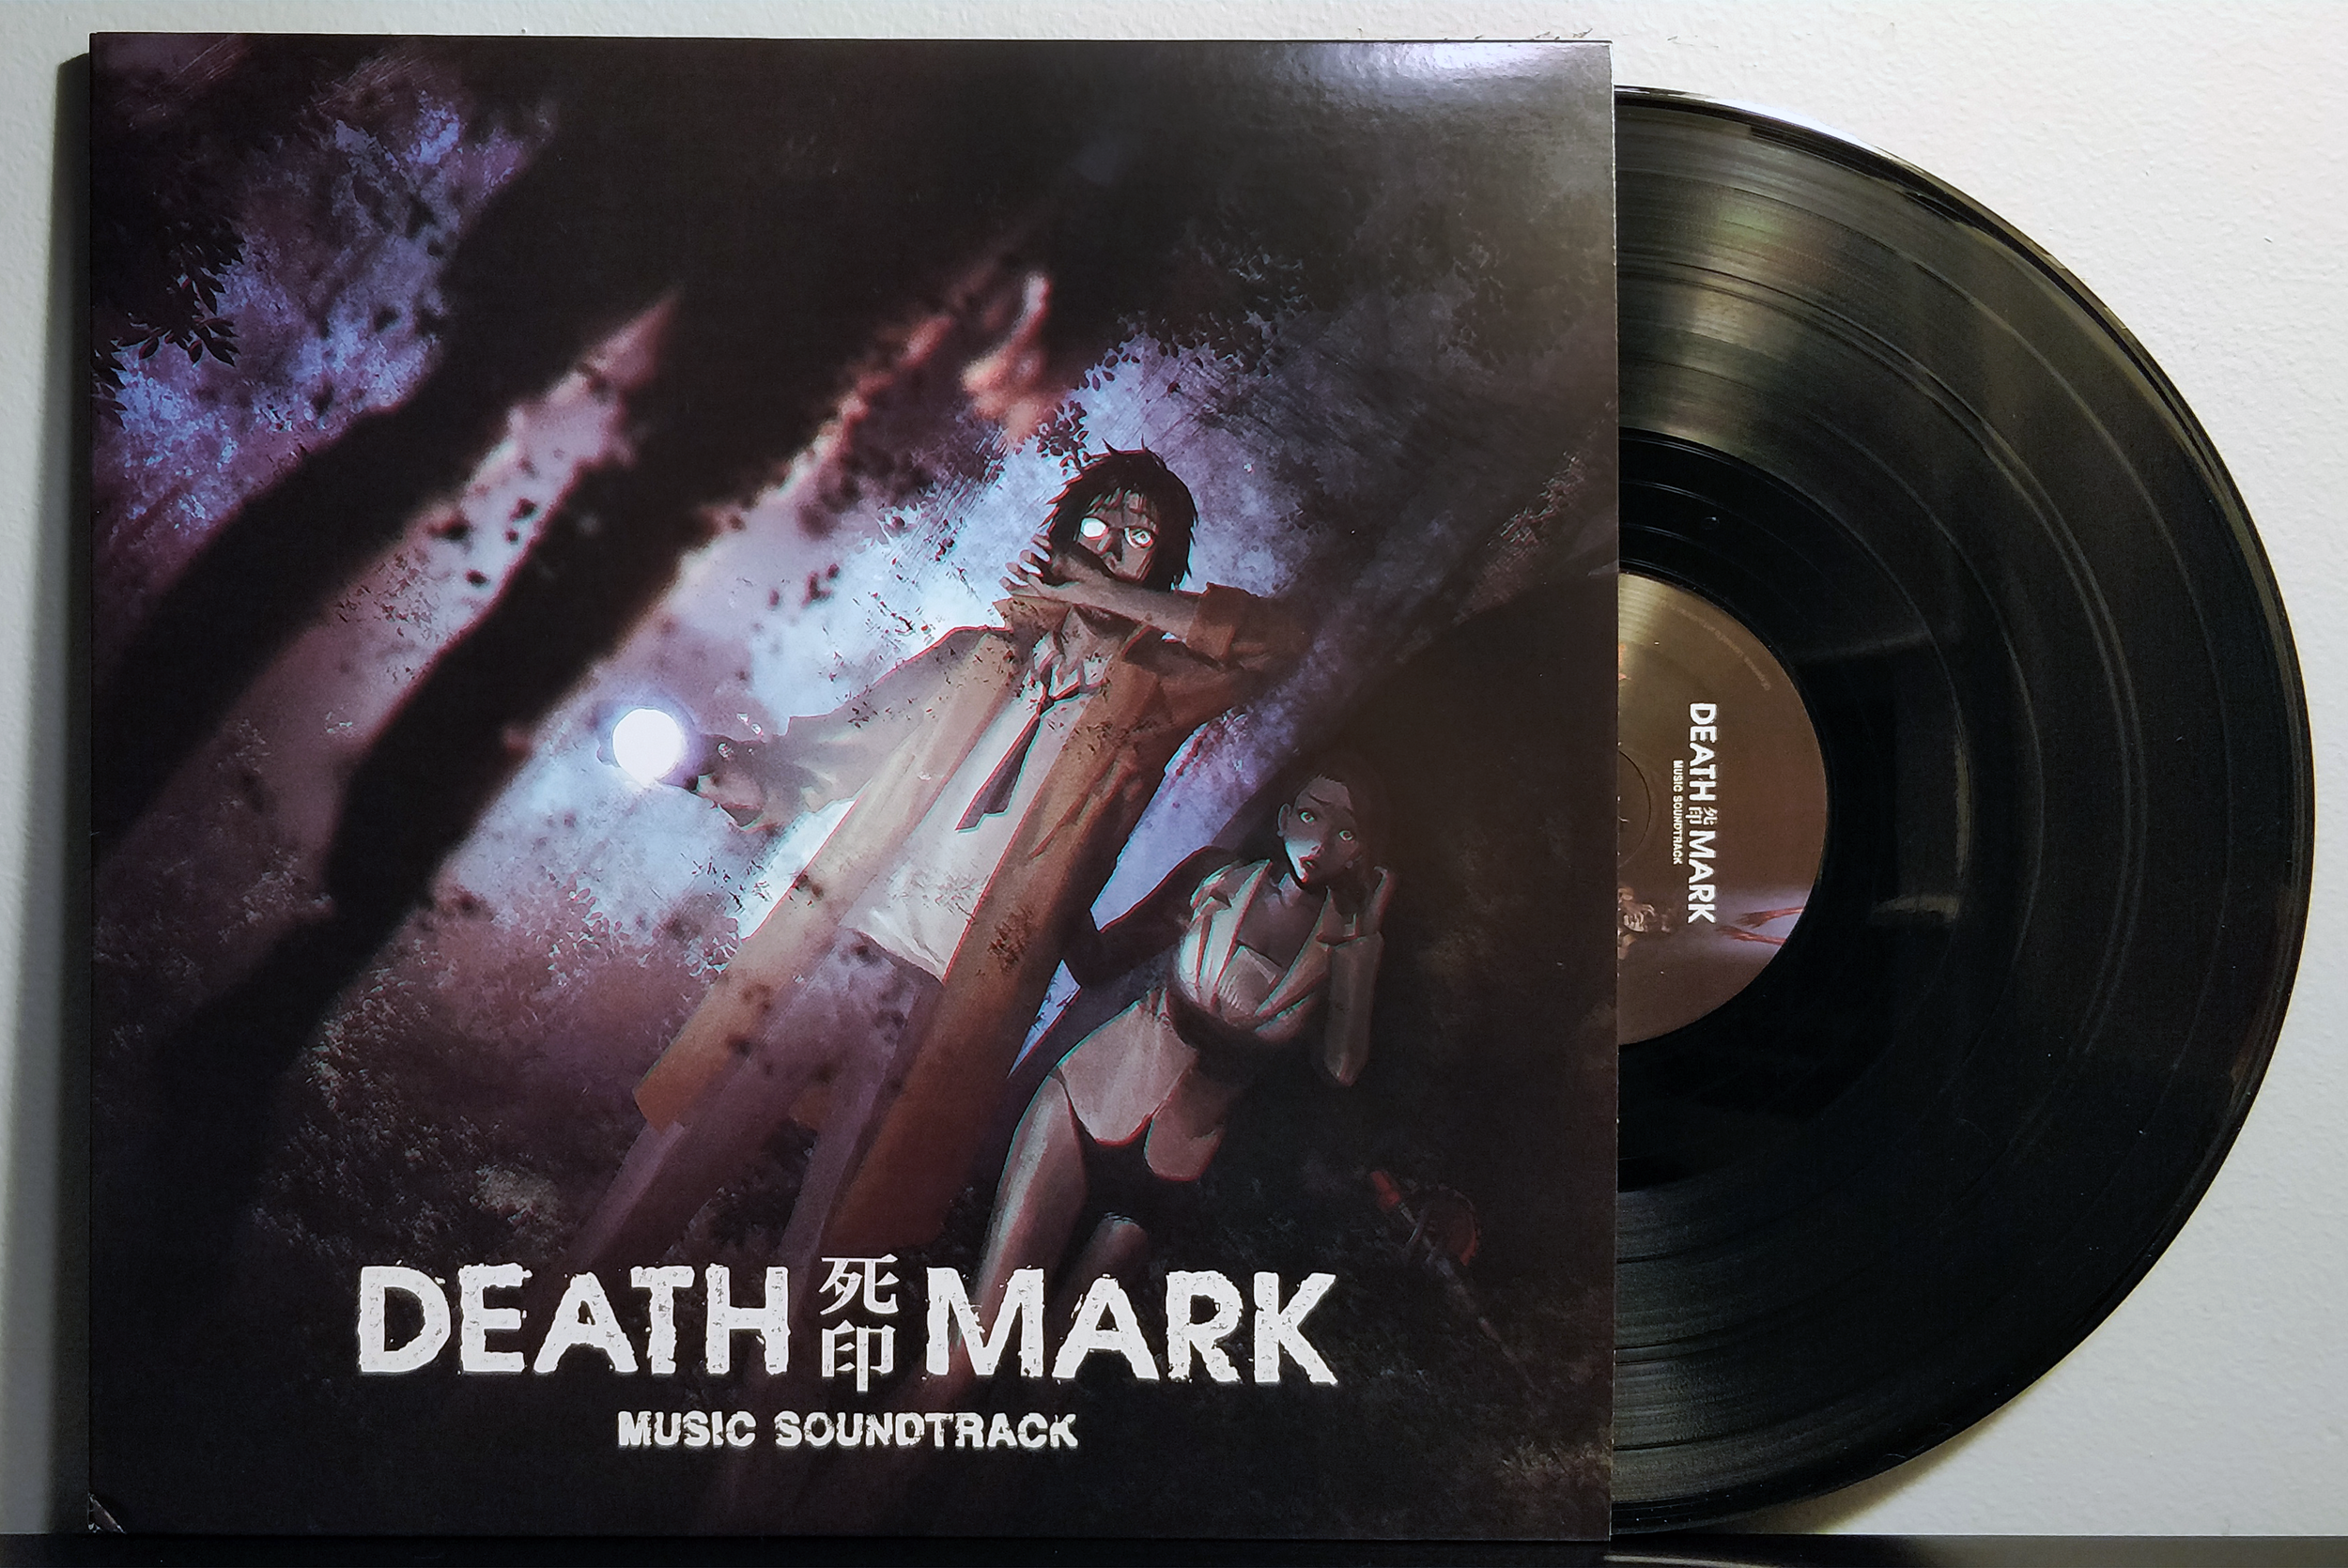 Death Mark by Naoaki Jimbo pressed on black vinyl by Aksys Games & Experience Inc.